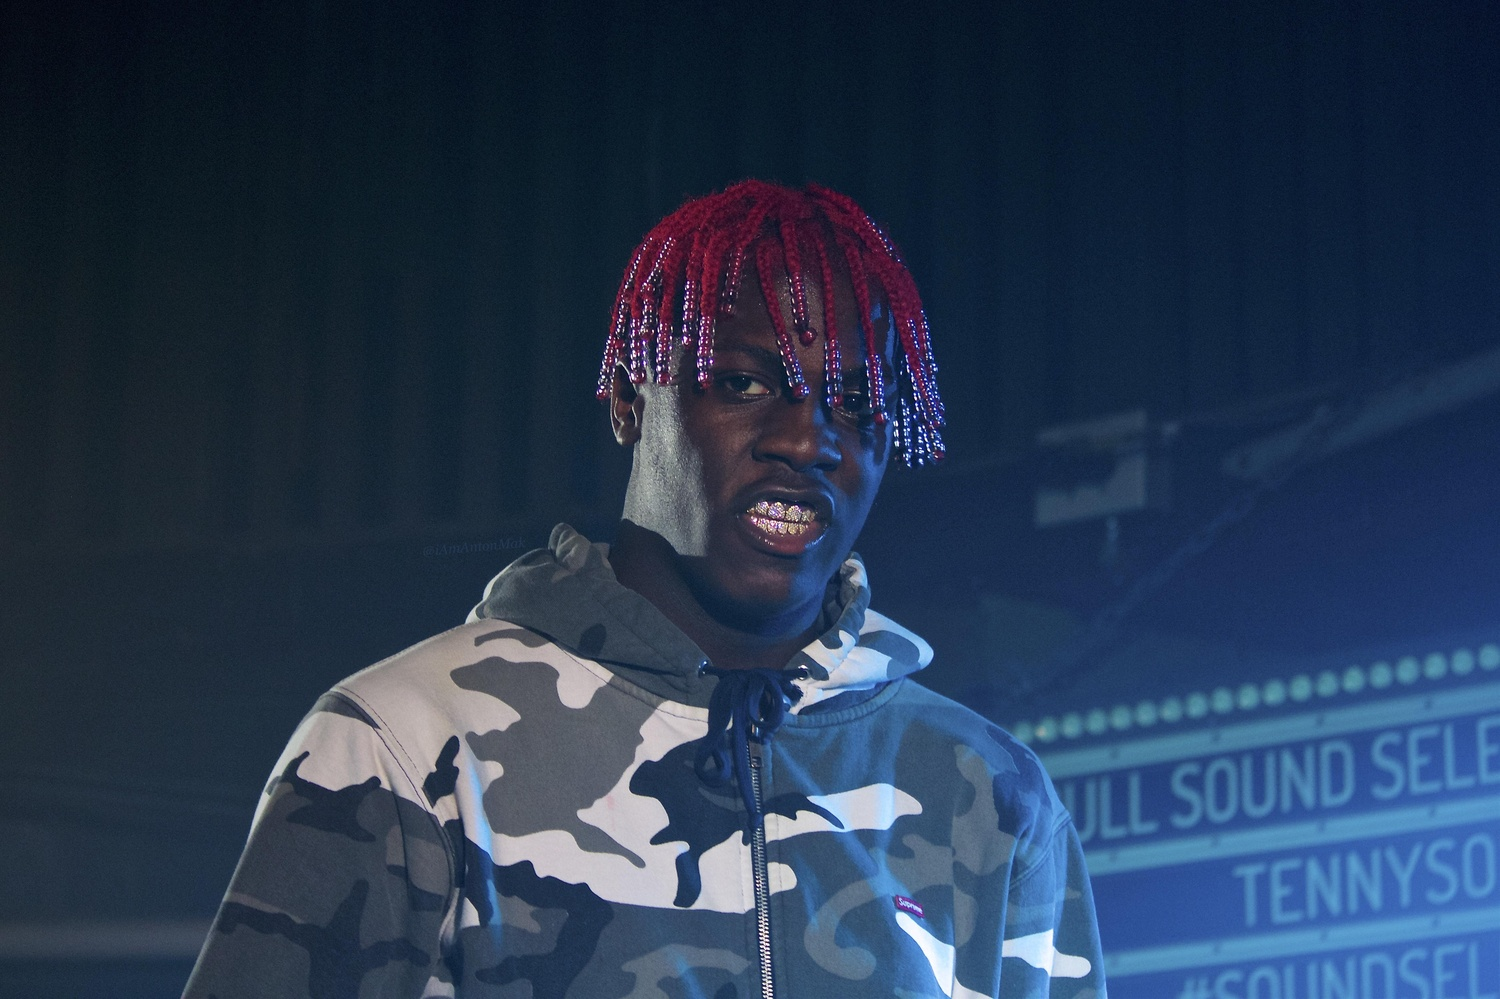 a107c82ecf Who is Lil Yachty  Wiki and Net worth - Krazy Wolf